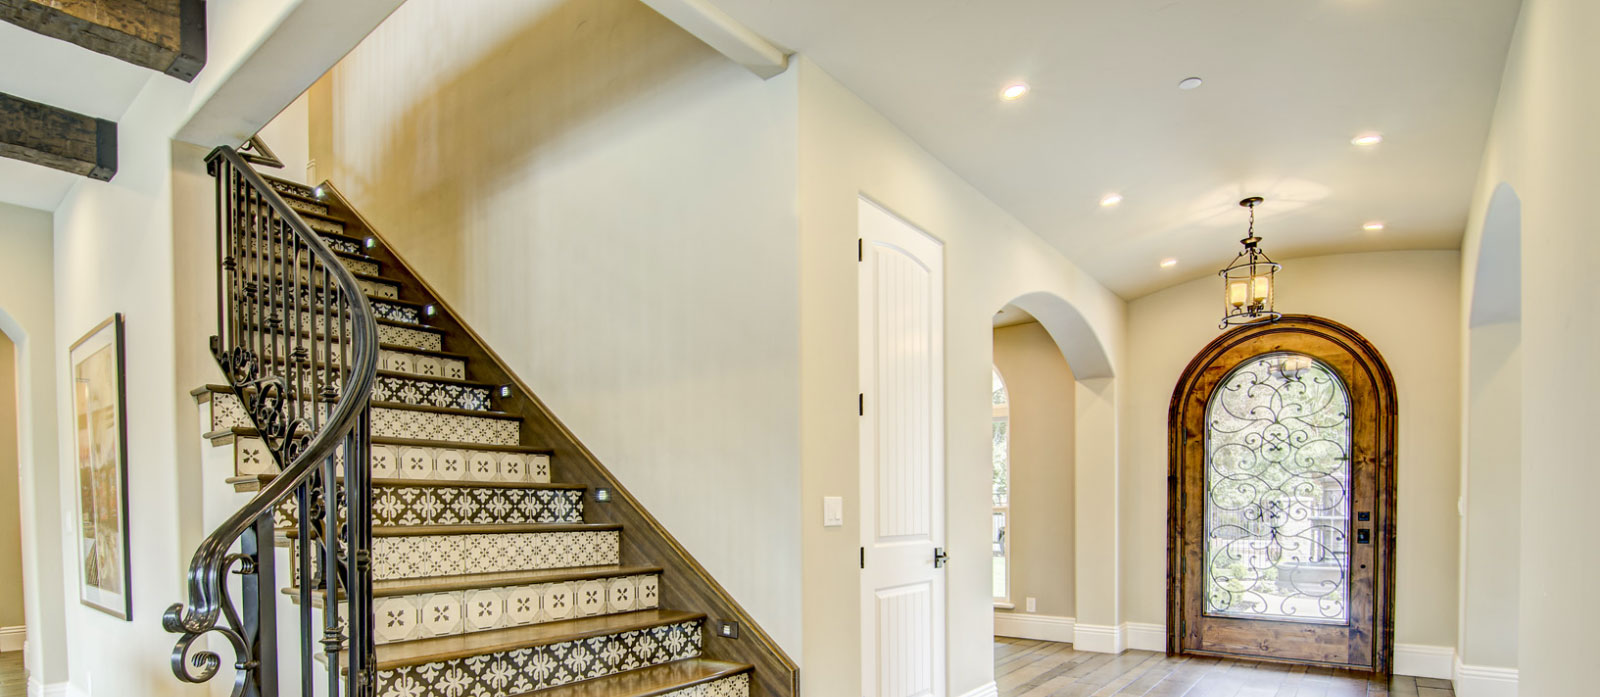 A view of the entryway and a staircase in a custom built home